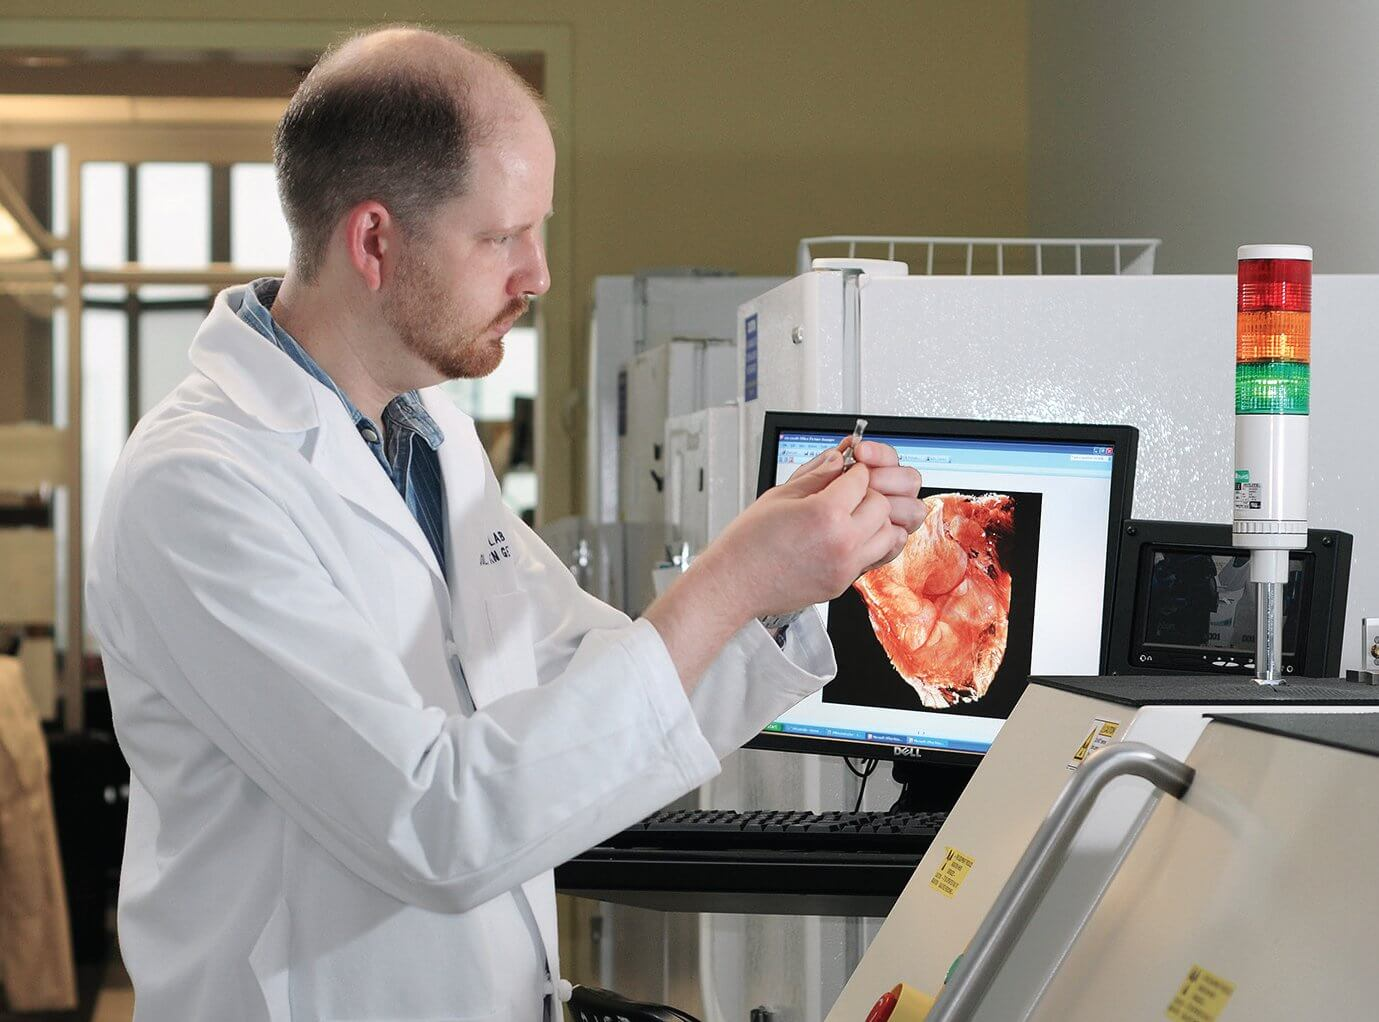 Brian Dawson, MicroCT Core specialist, operates the Xradia MicroXCT imaging system, which allows Lawrence BDPT researchers to visualize bone and cartilage at a resolution never before achieved. (Credit: The Rolanette and Berdon Lawrence Bone Disease Program of Texas)